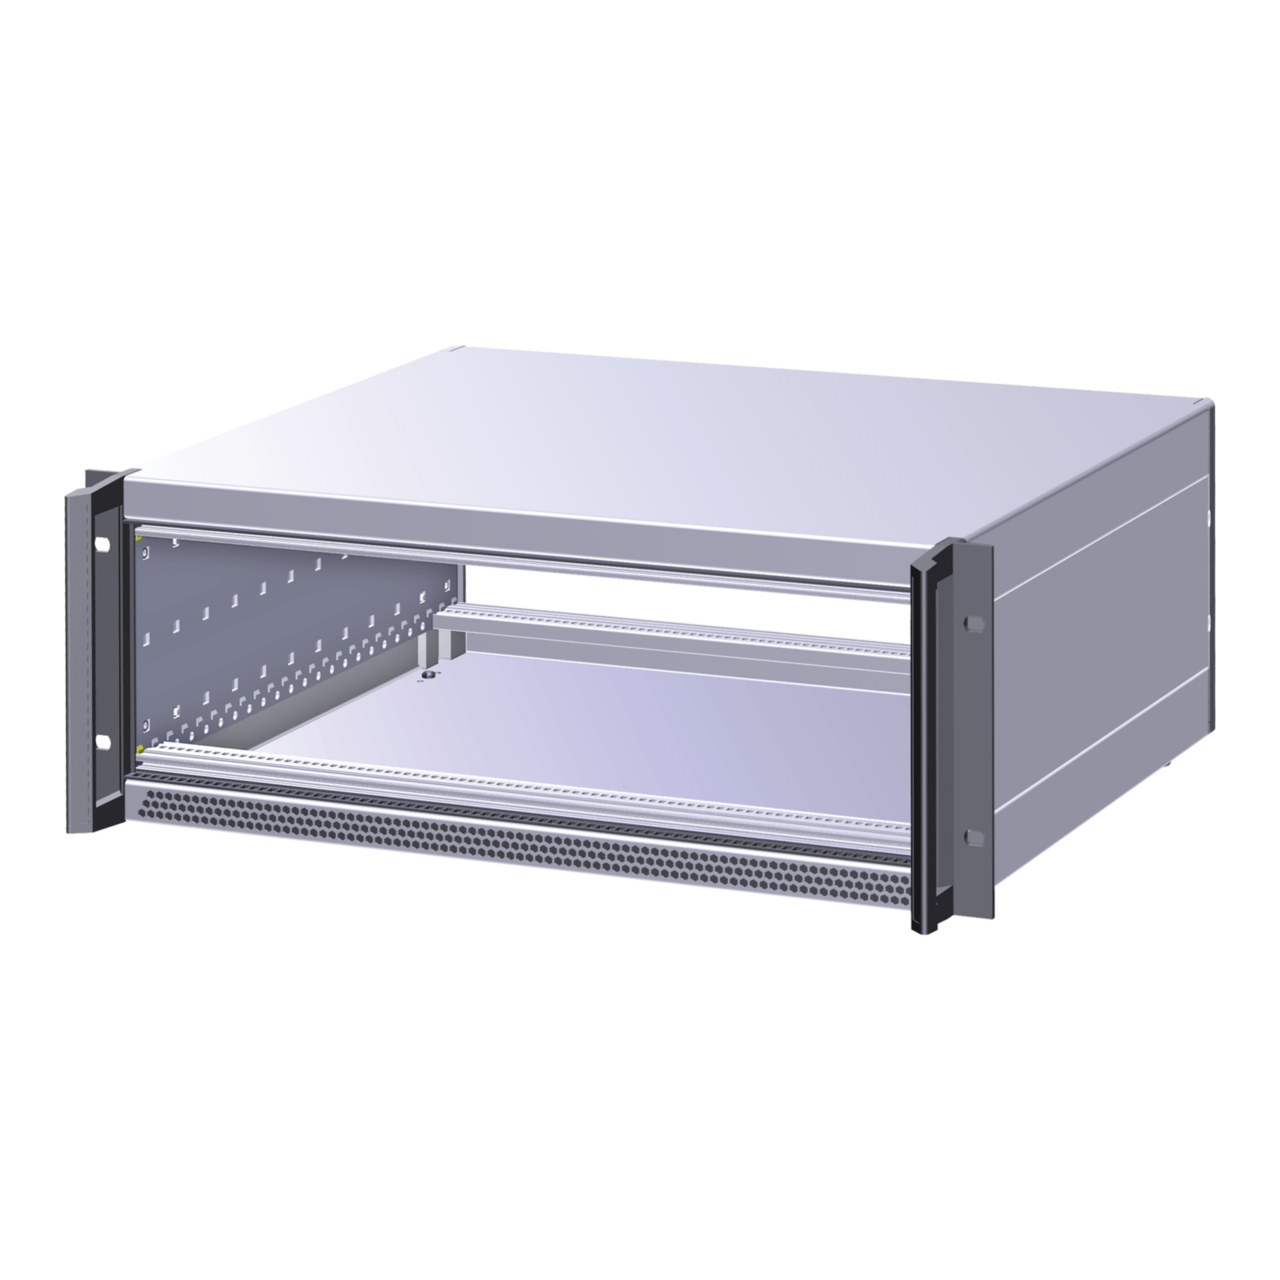 Image for RatiopacPRO AIR, Case, Unshielded, Rack Mount with Handles from Schroff - Asia Pacific